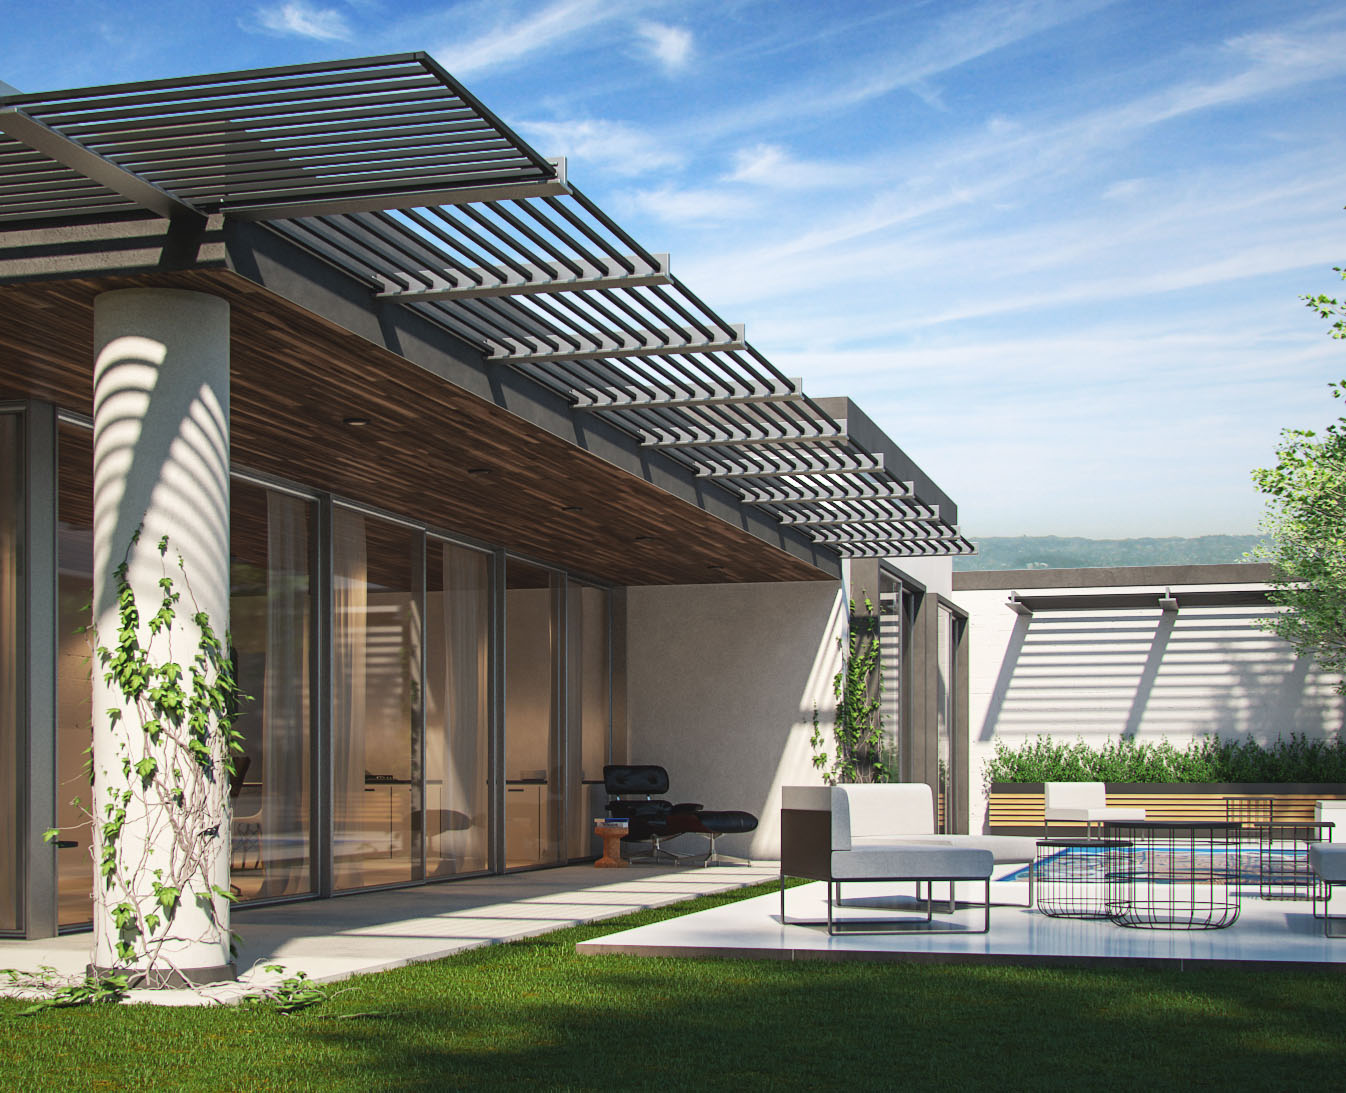 V Ray Tutorial For Residential Exterior In 3dsmax Aleso3d